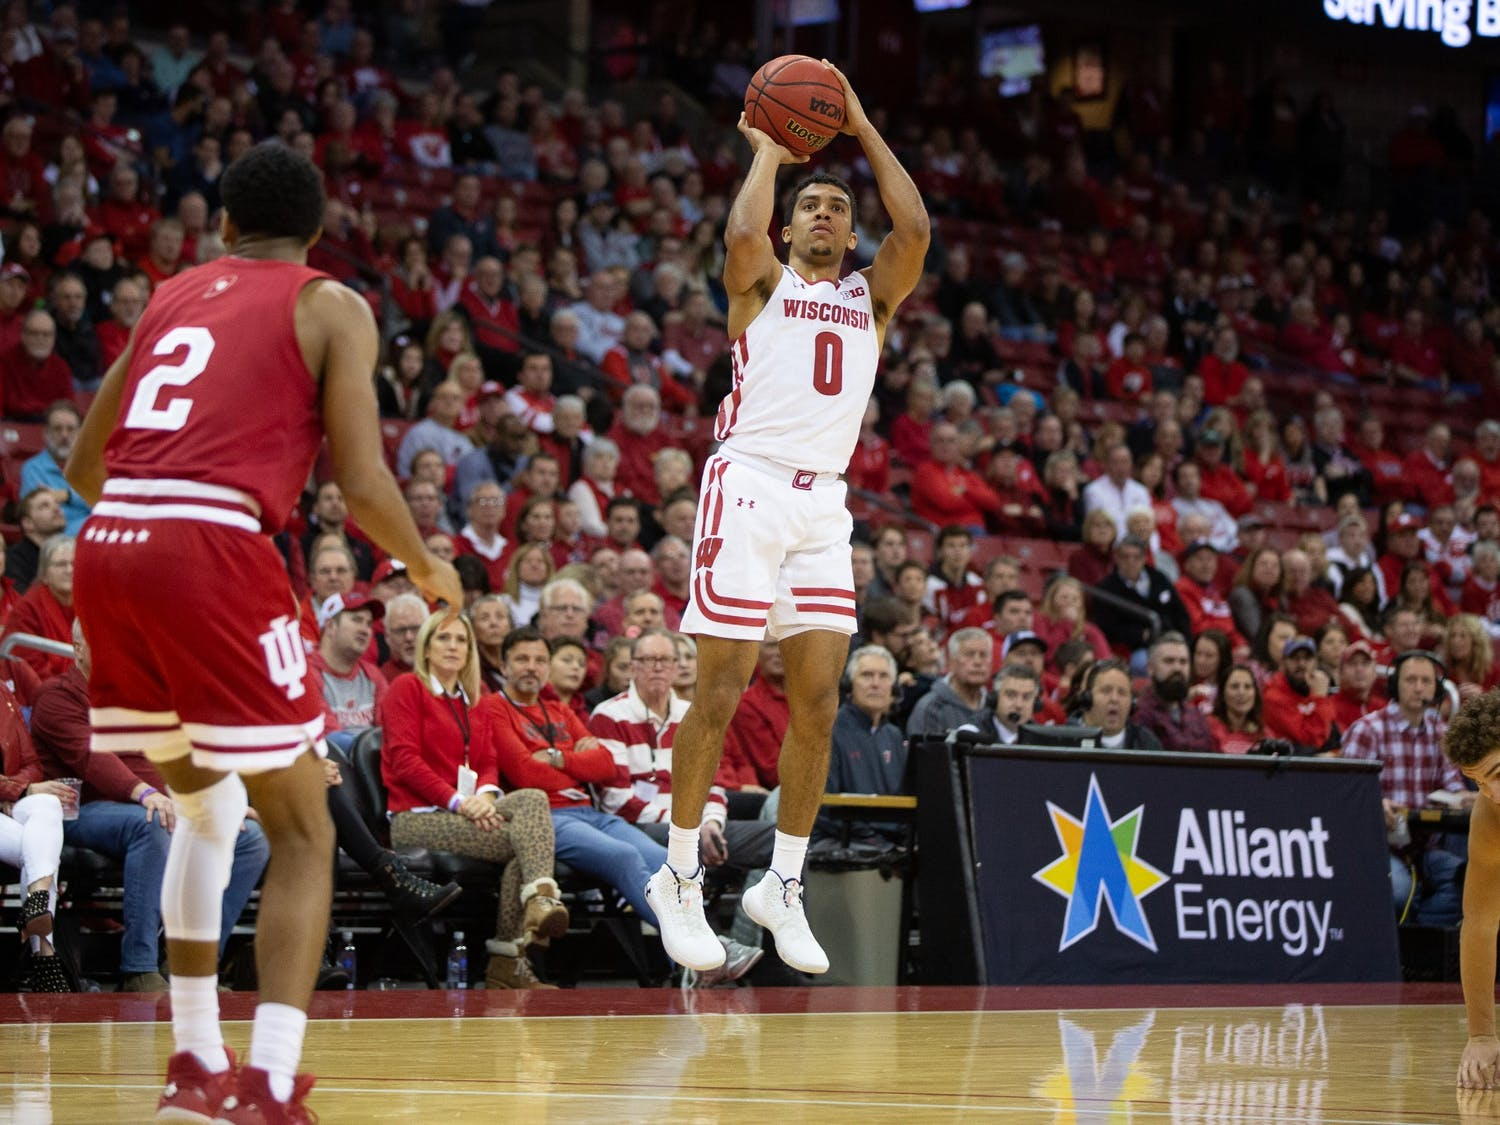 D'Mitrik Trice has been on fire since Christmas, averaging over 22 points-per-game in the Badgers last four contests.